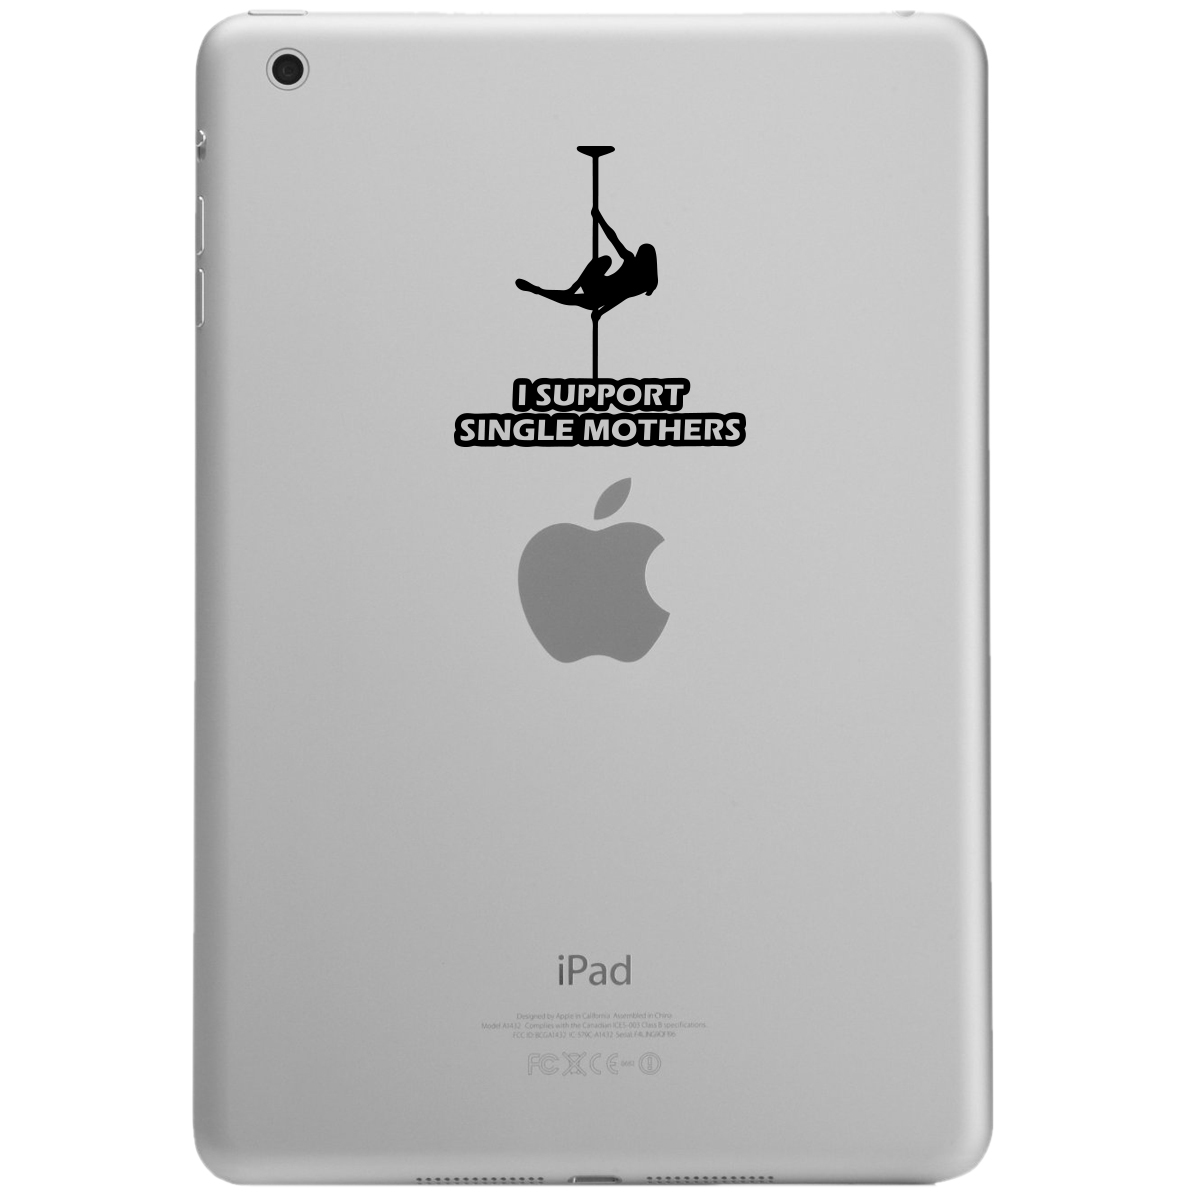 Funny Stripper Girl I Support Single Mothers iPad Tablet Vinyl Sticker Decal